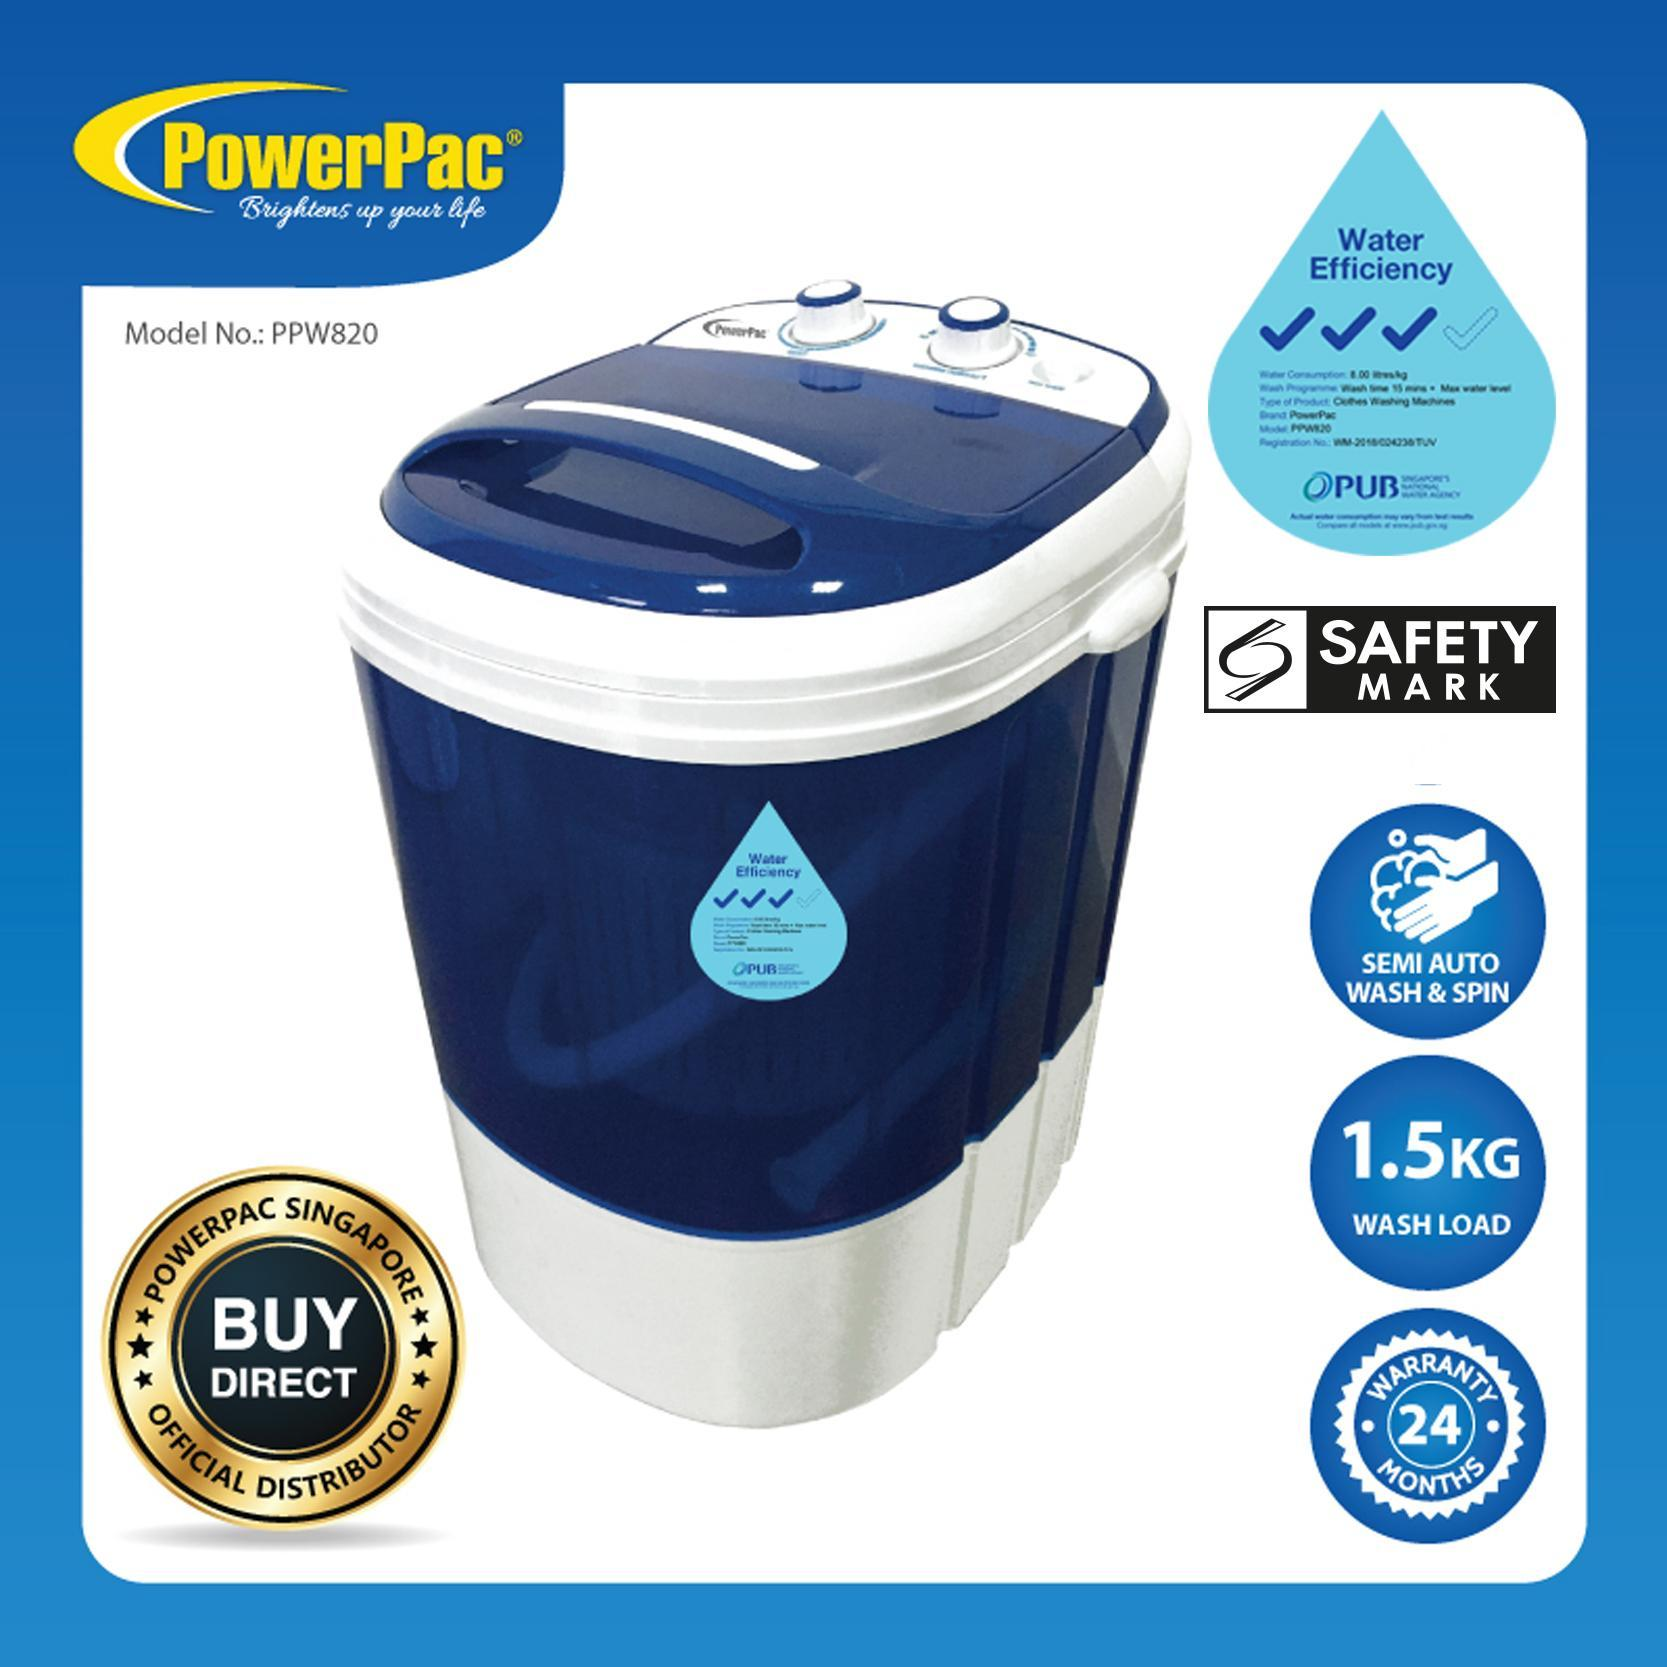 Powerpac 2in1 Mini Washing Machine - 15 Mins Fast Laundry (ppw820) By Powerpac.